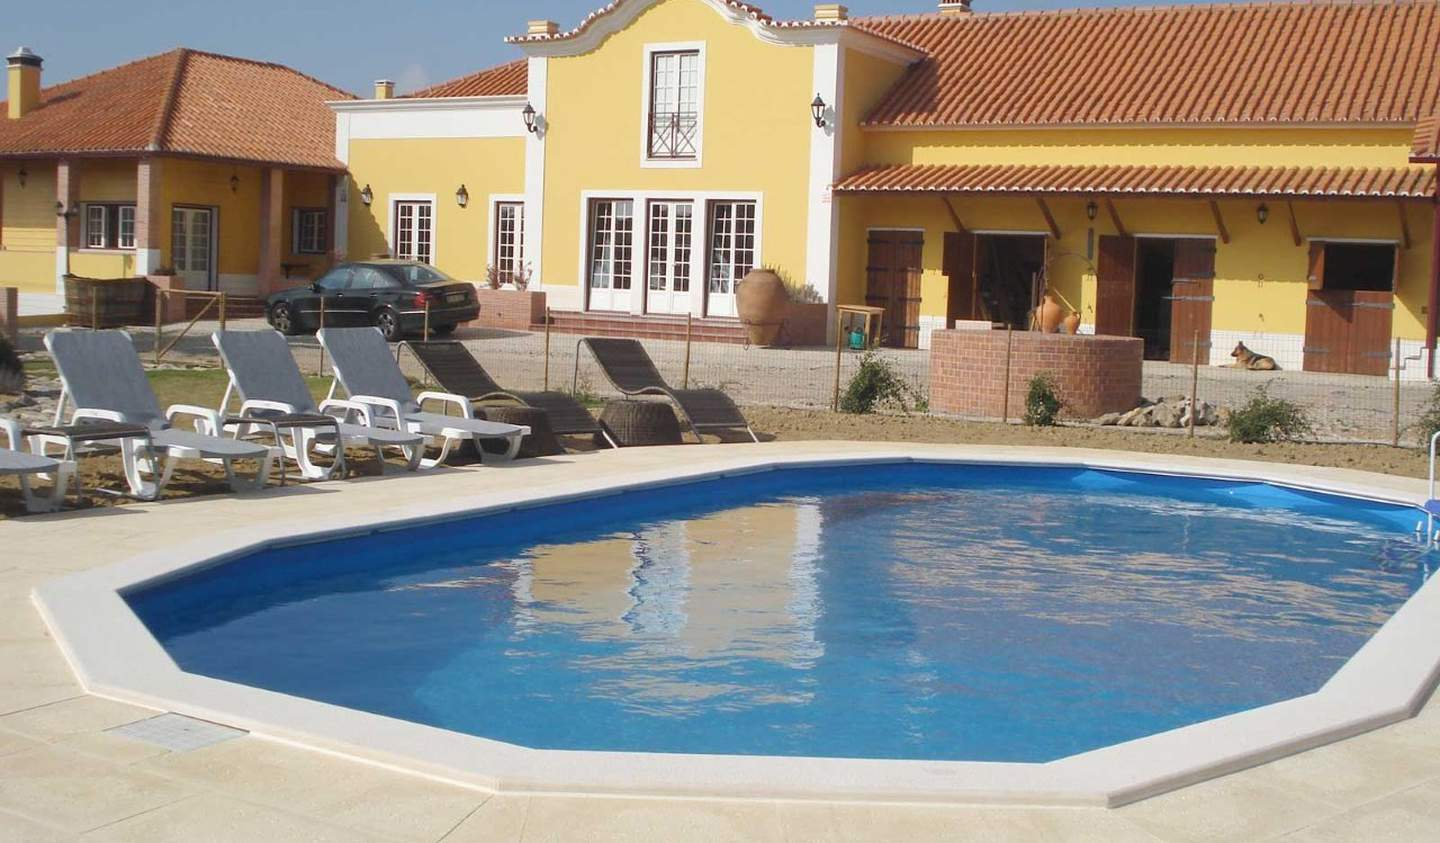 Villa with pool and terrace Reguengo Grande